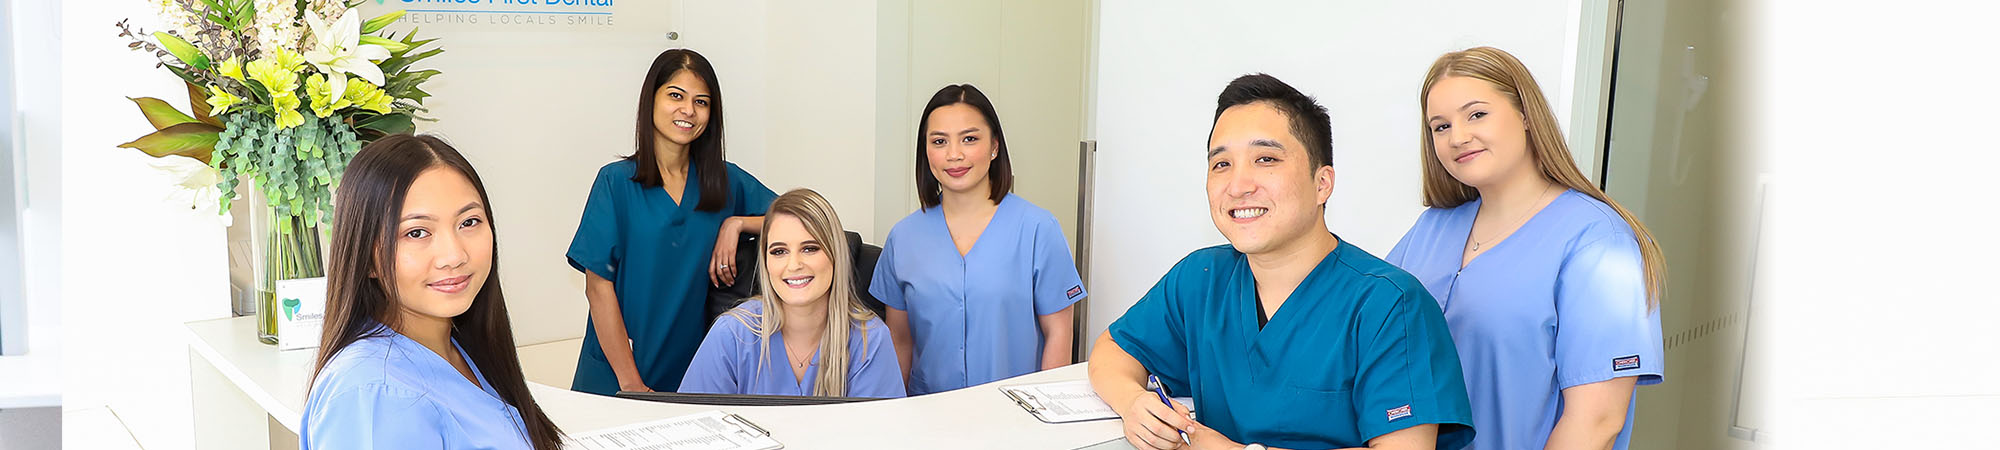 sf dental team